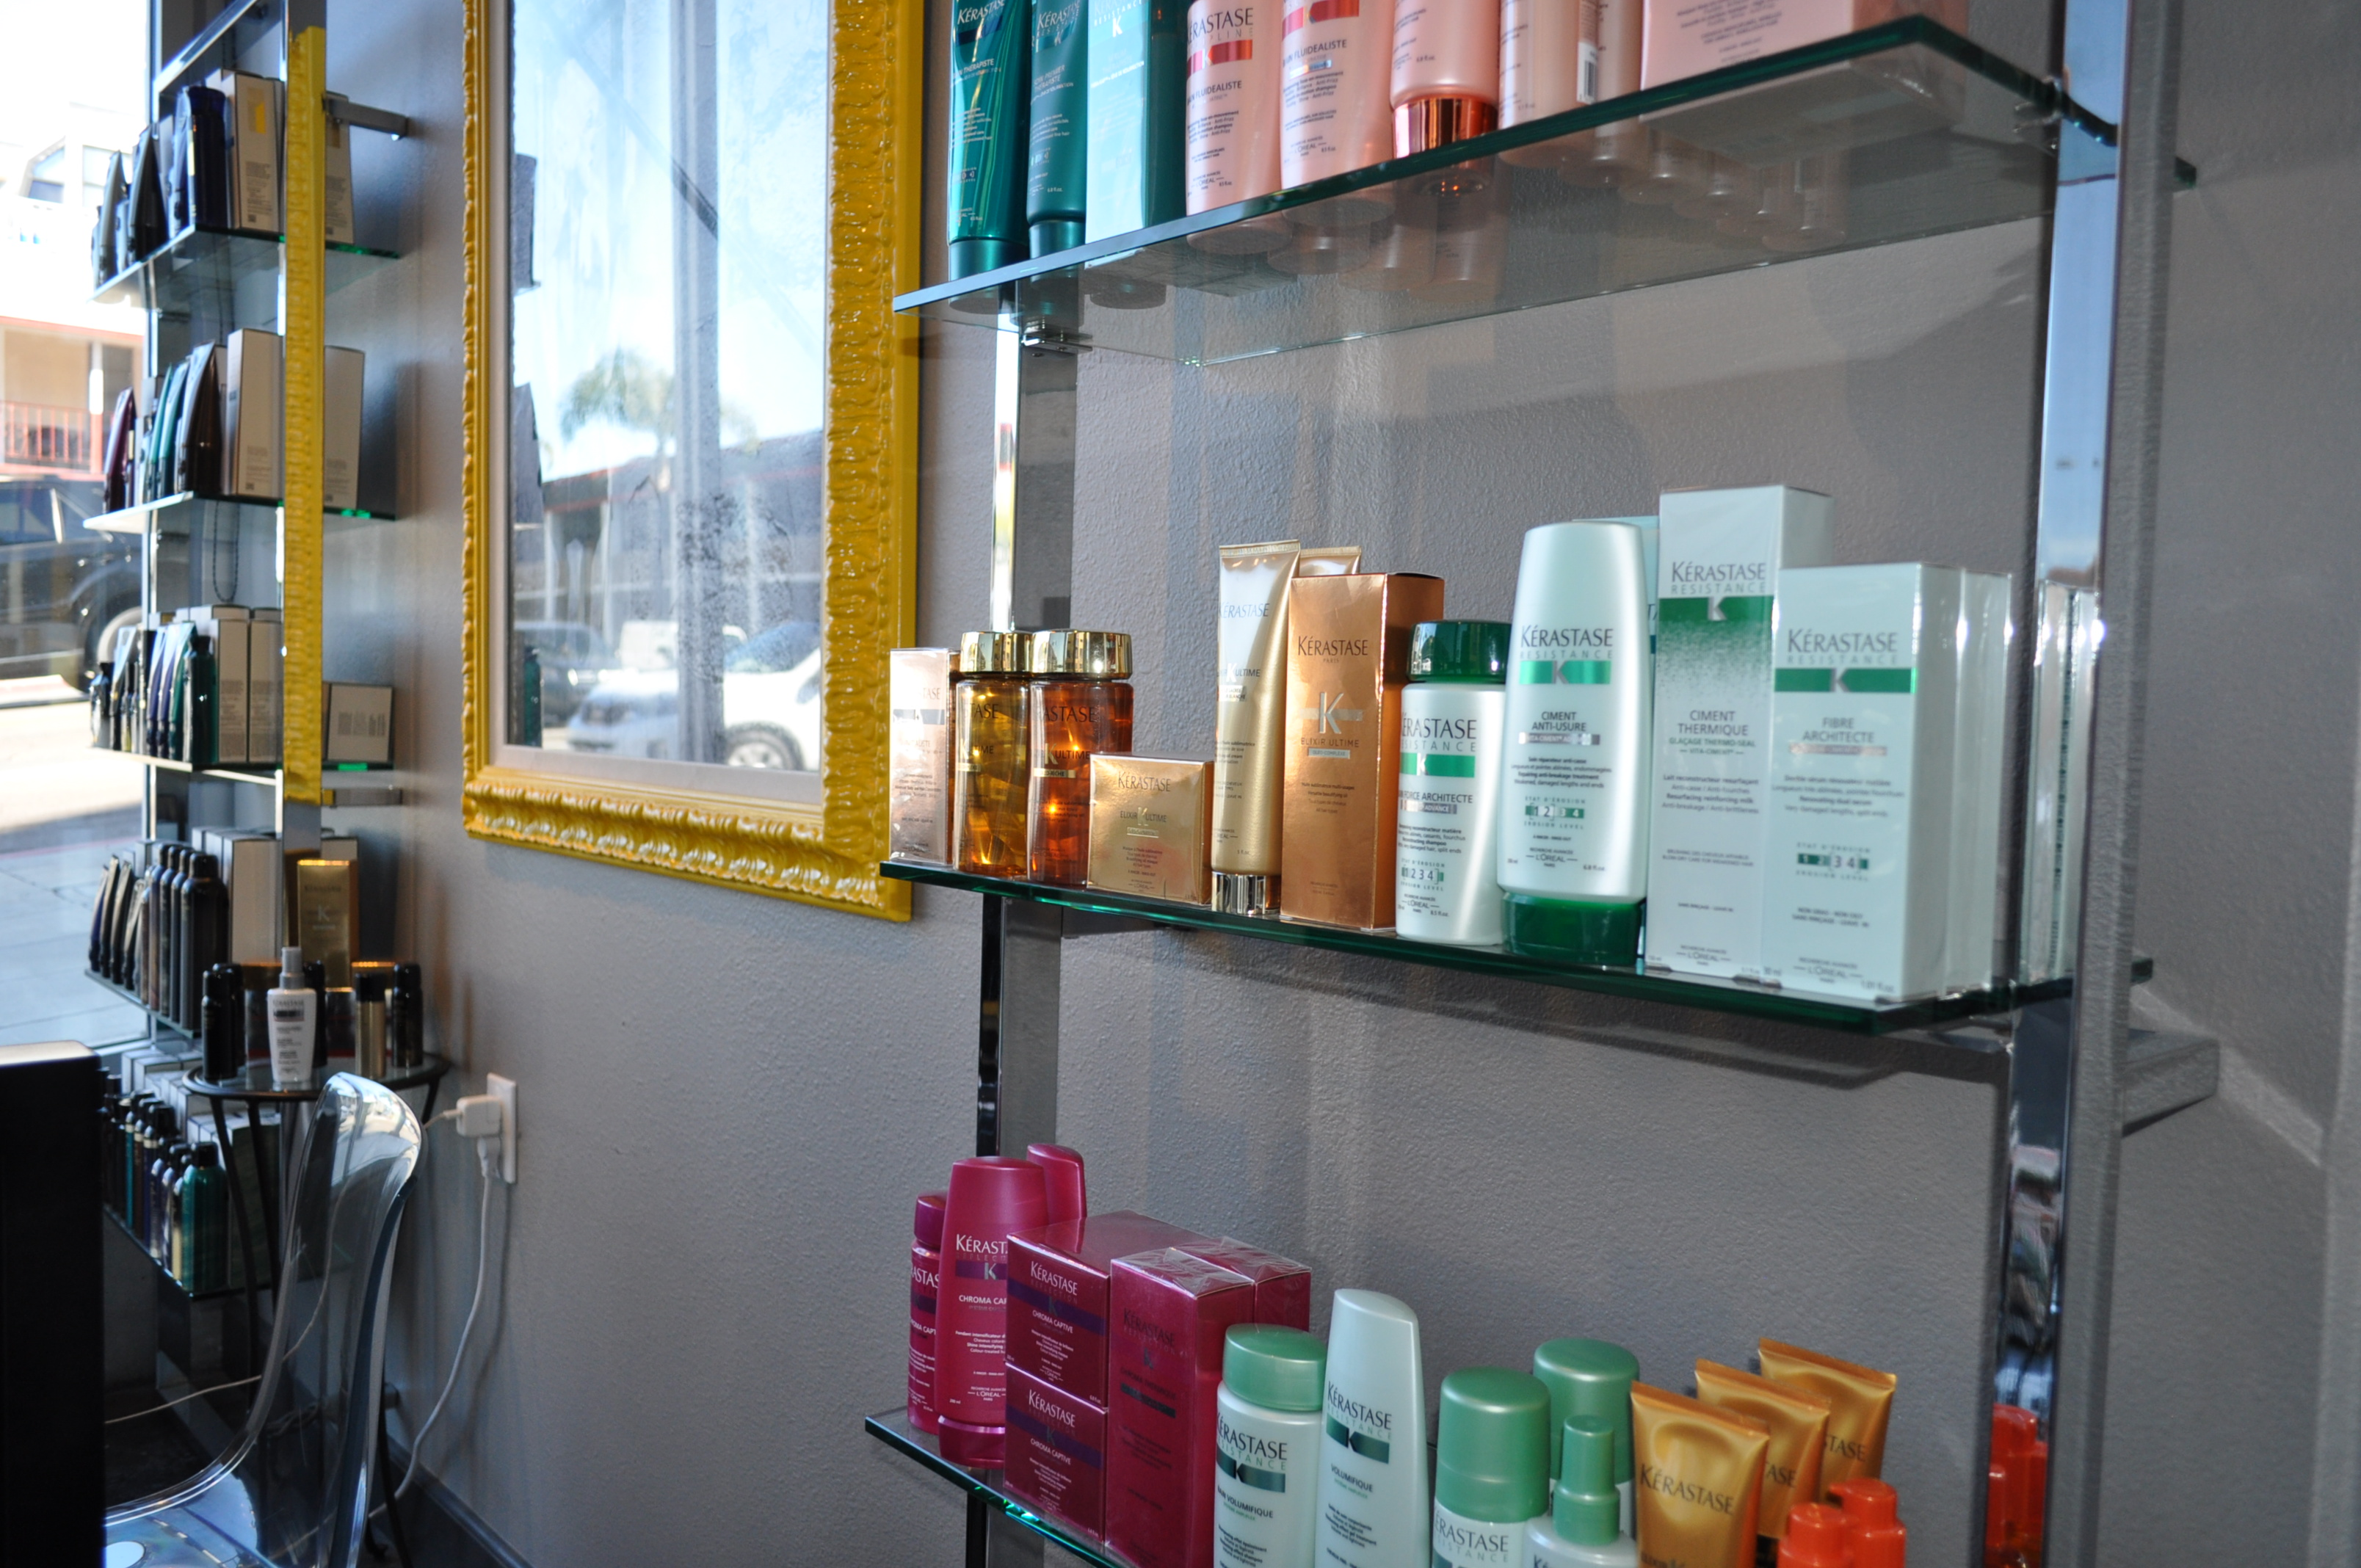 Kerastase Products Little Italy